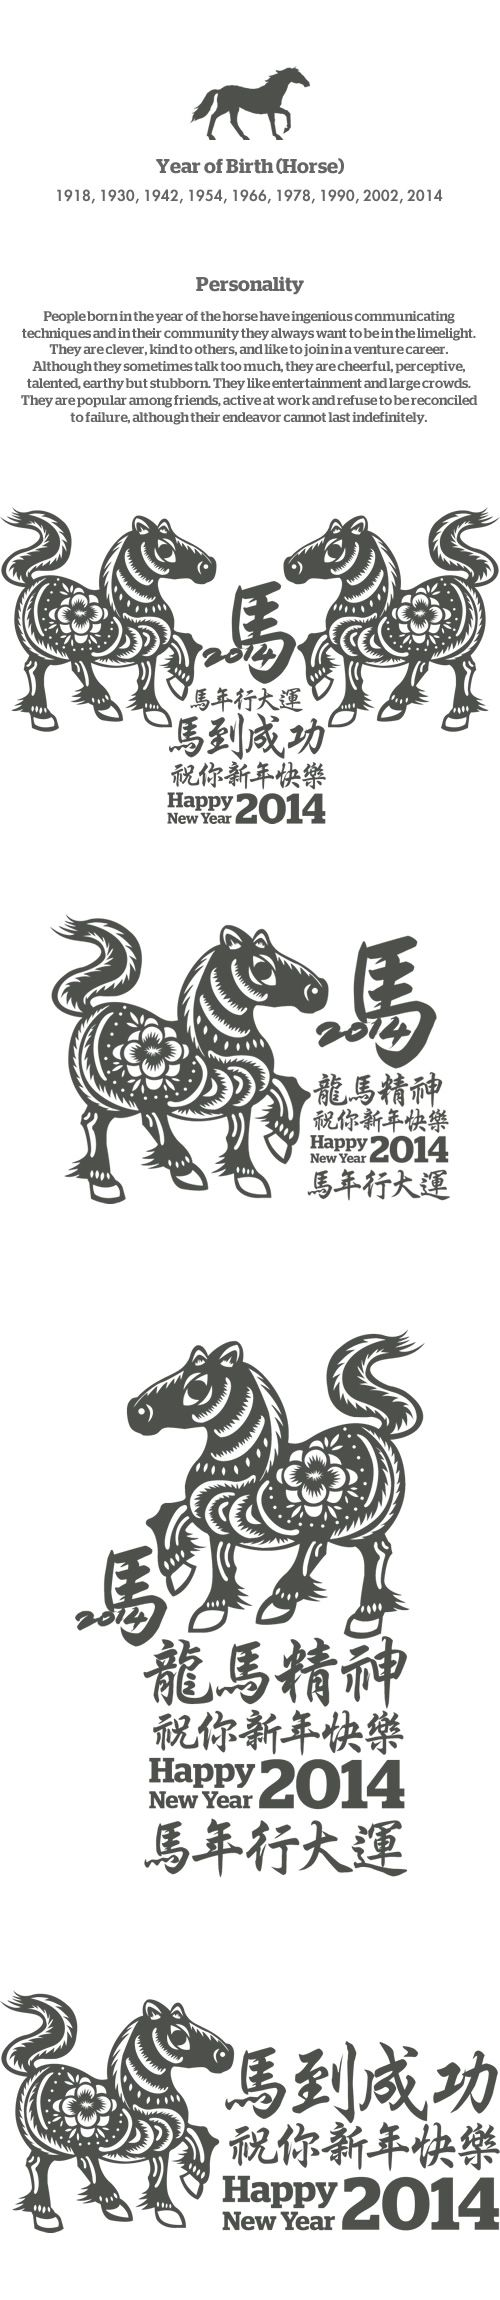 vector illustrations of a chinese new year 2014 year of the horse which include 4 different - Chinese New Year 1966